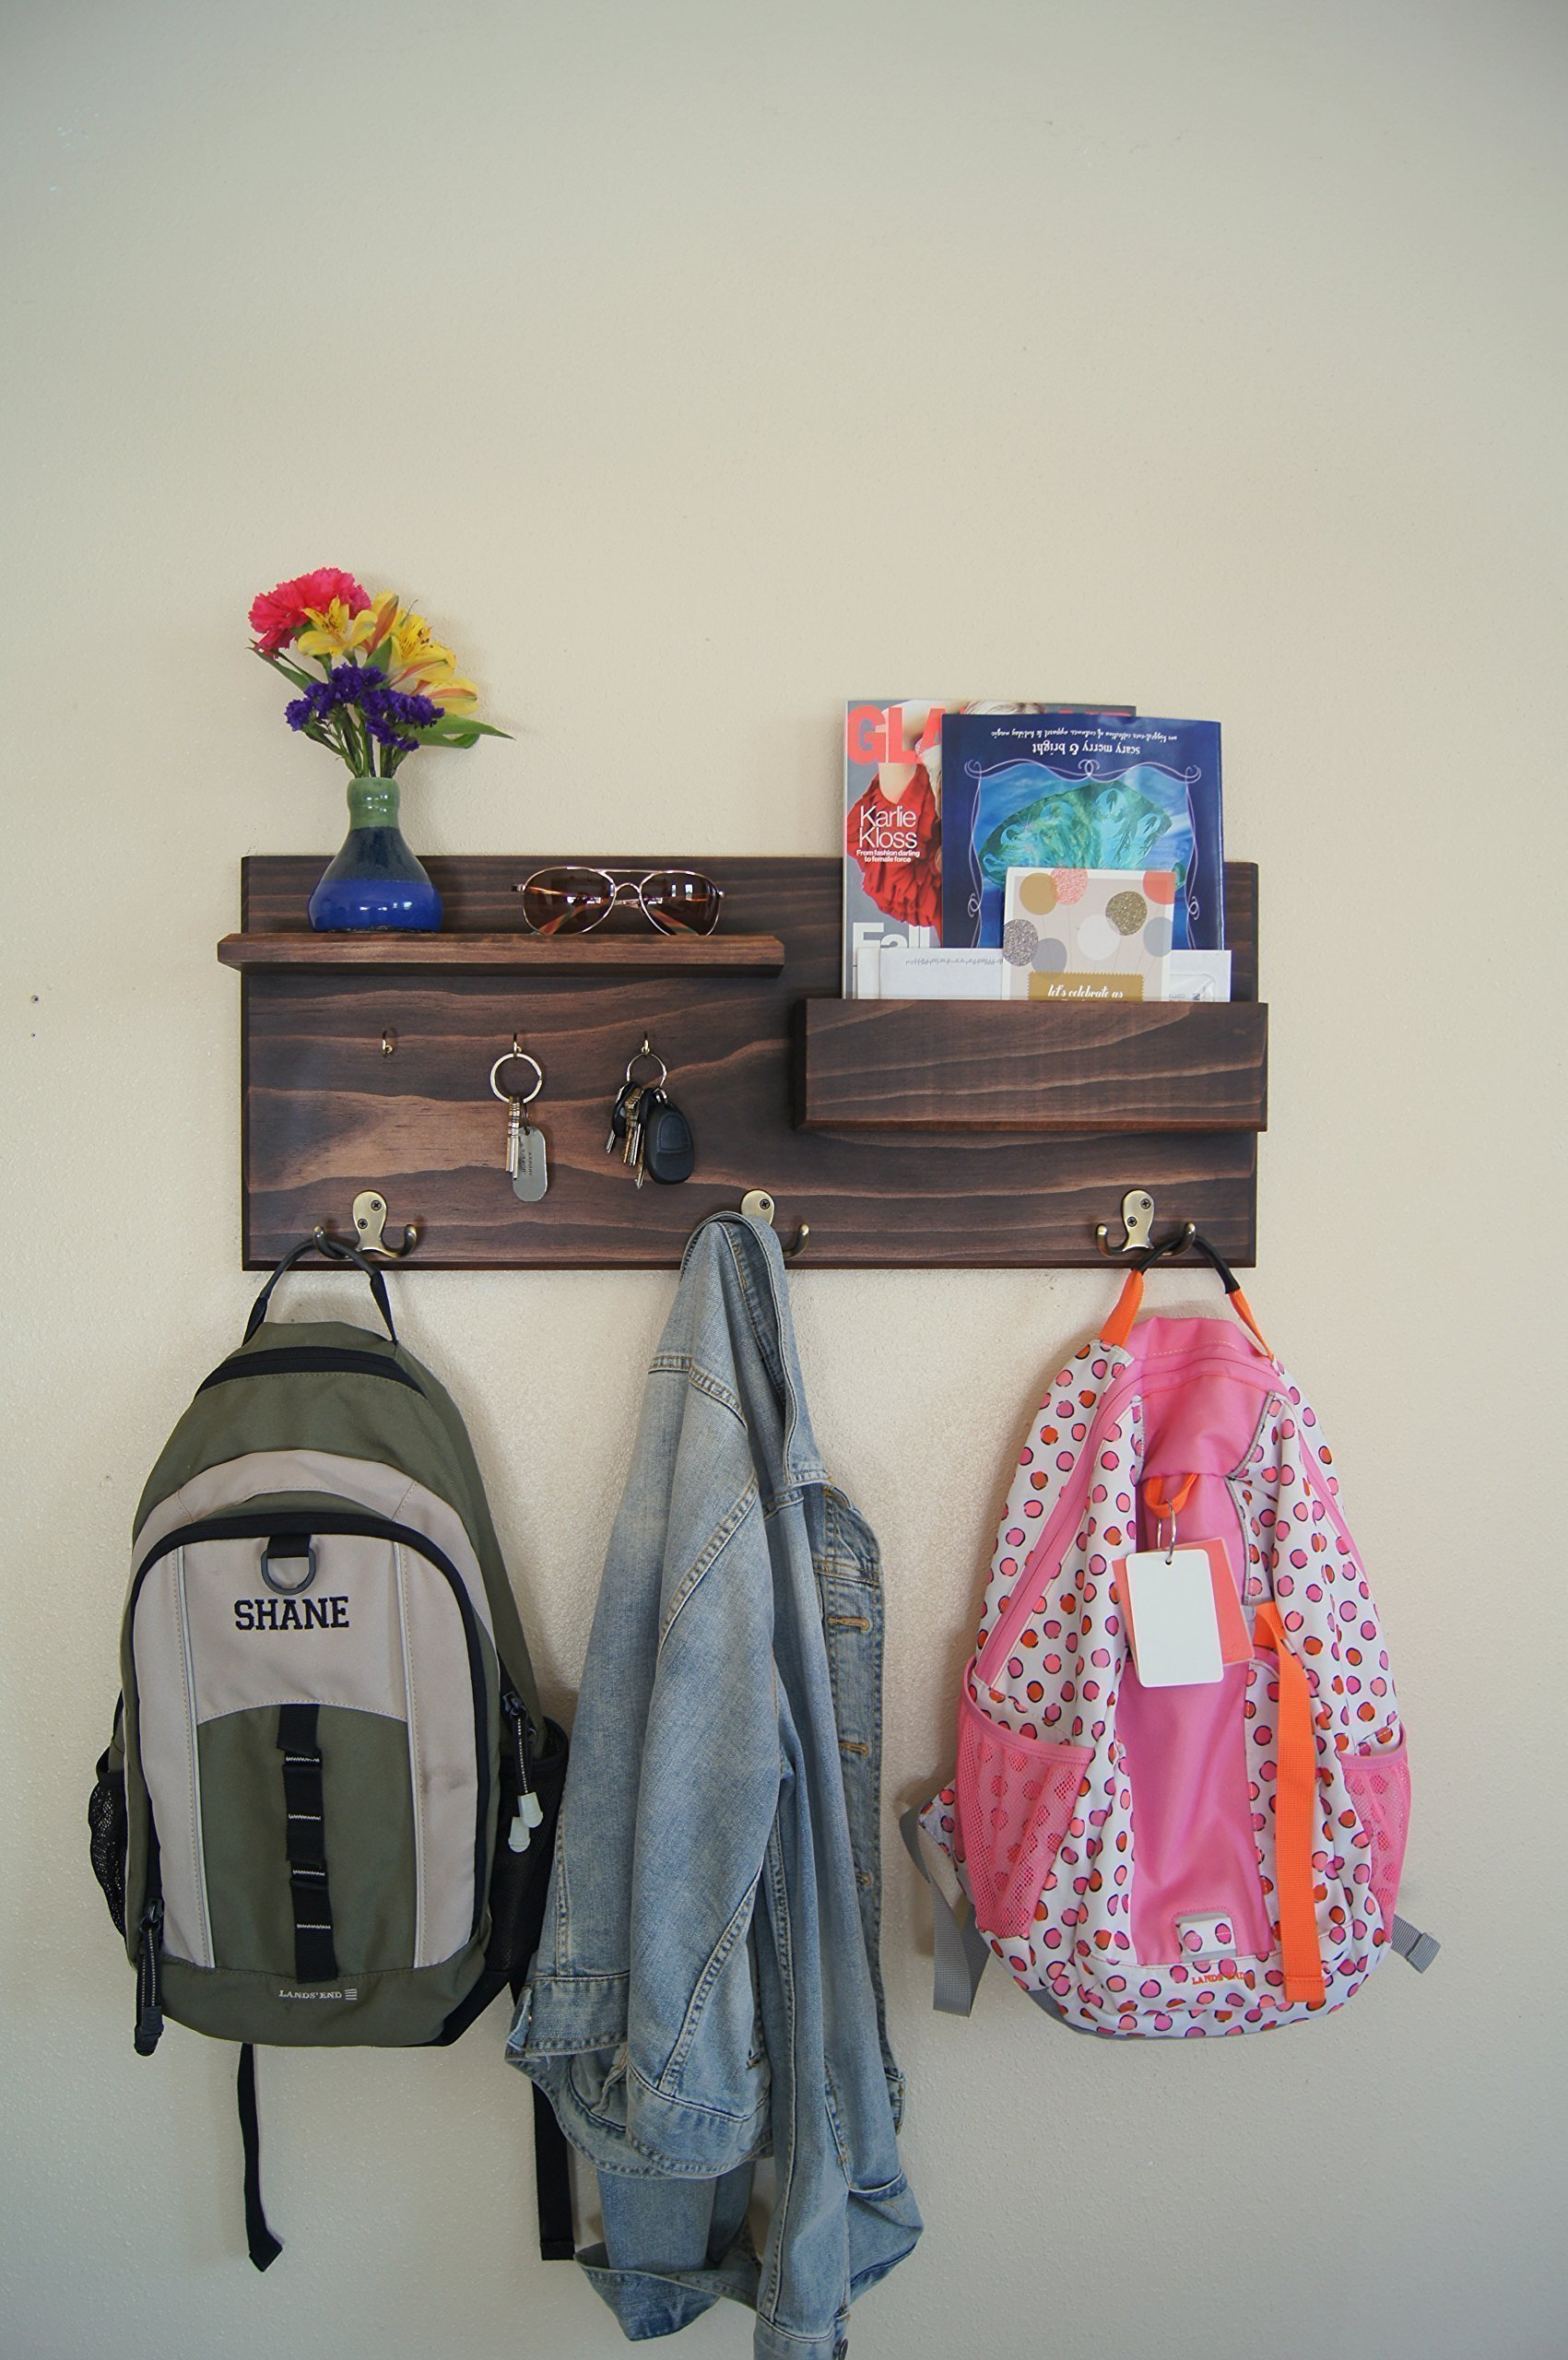 Coat Hooks and Key Hooks Mail Storage Floating Shelf Entryway Organizer Made in the USA by Midnight Woodworks